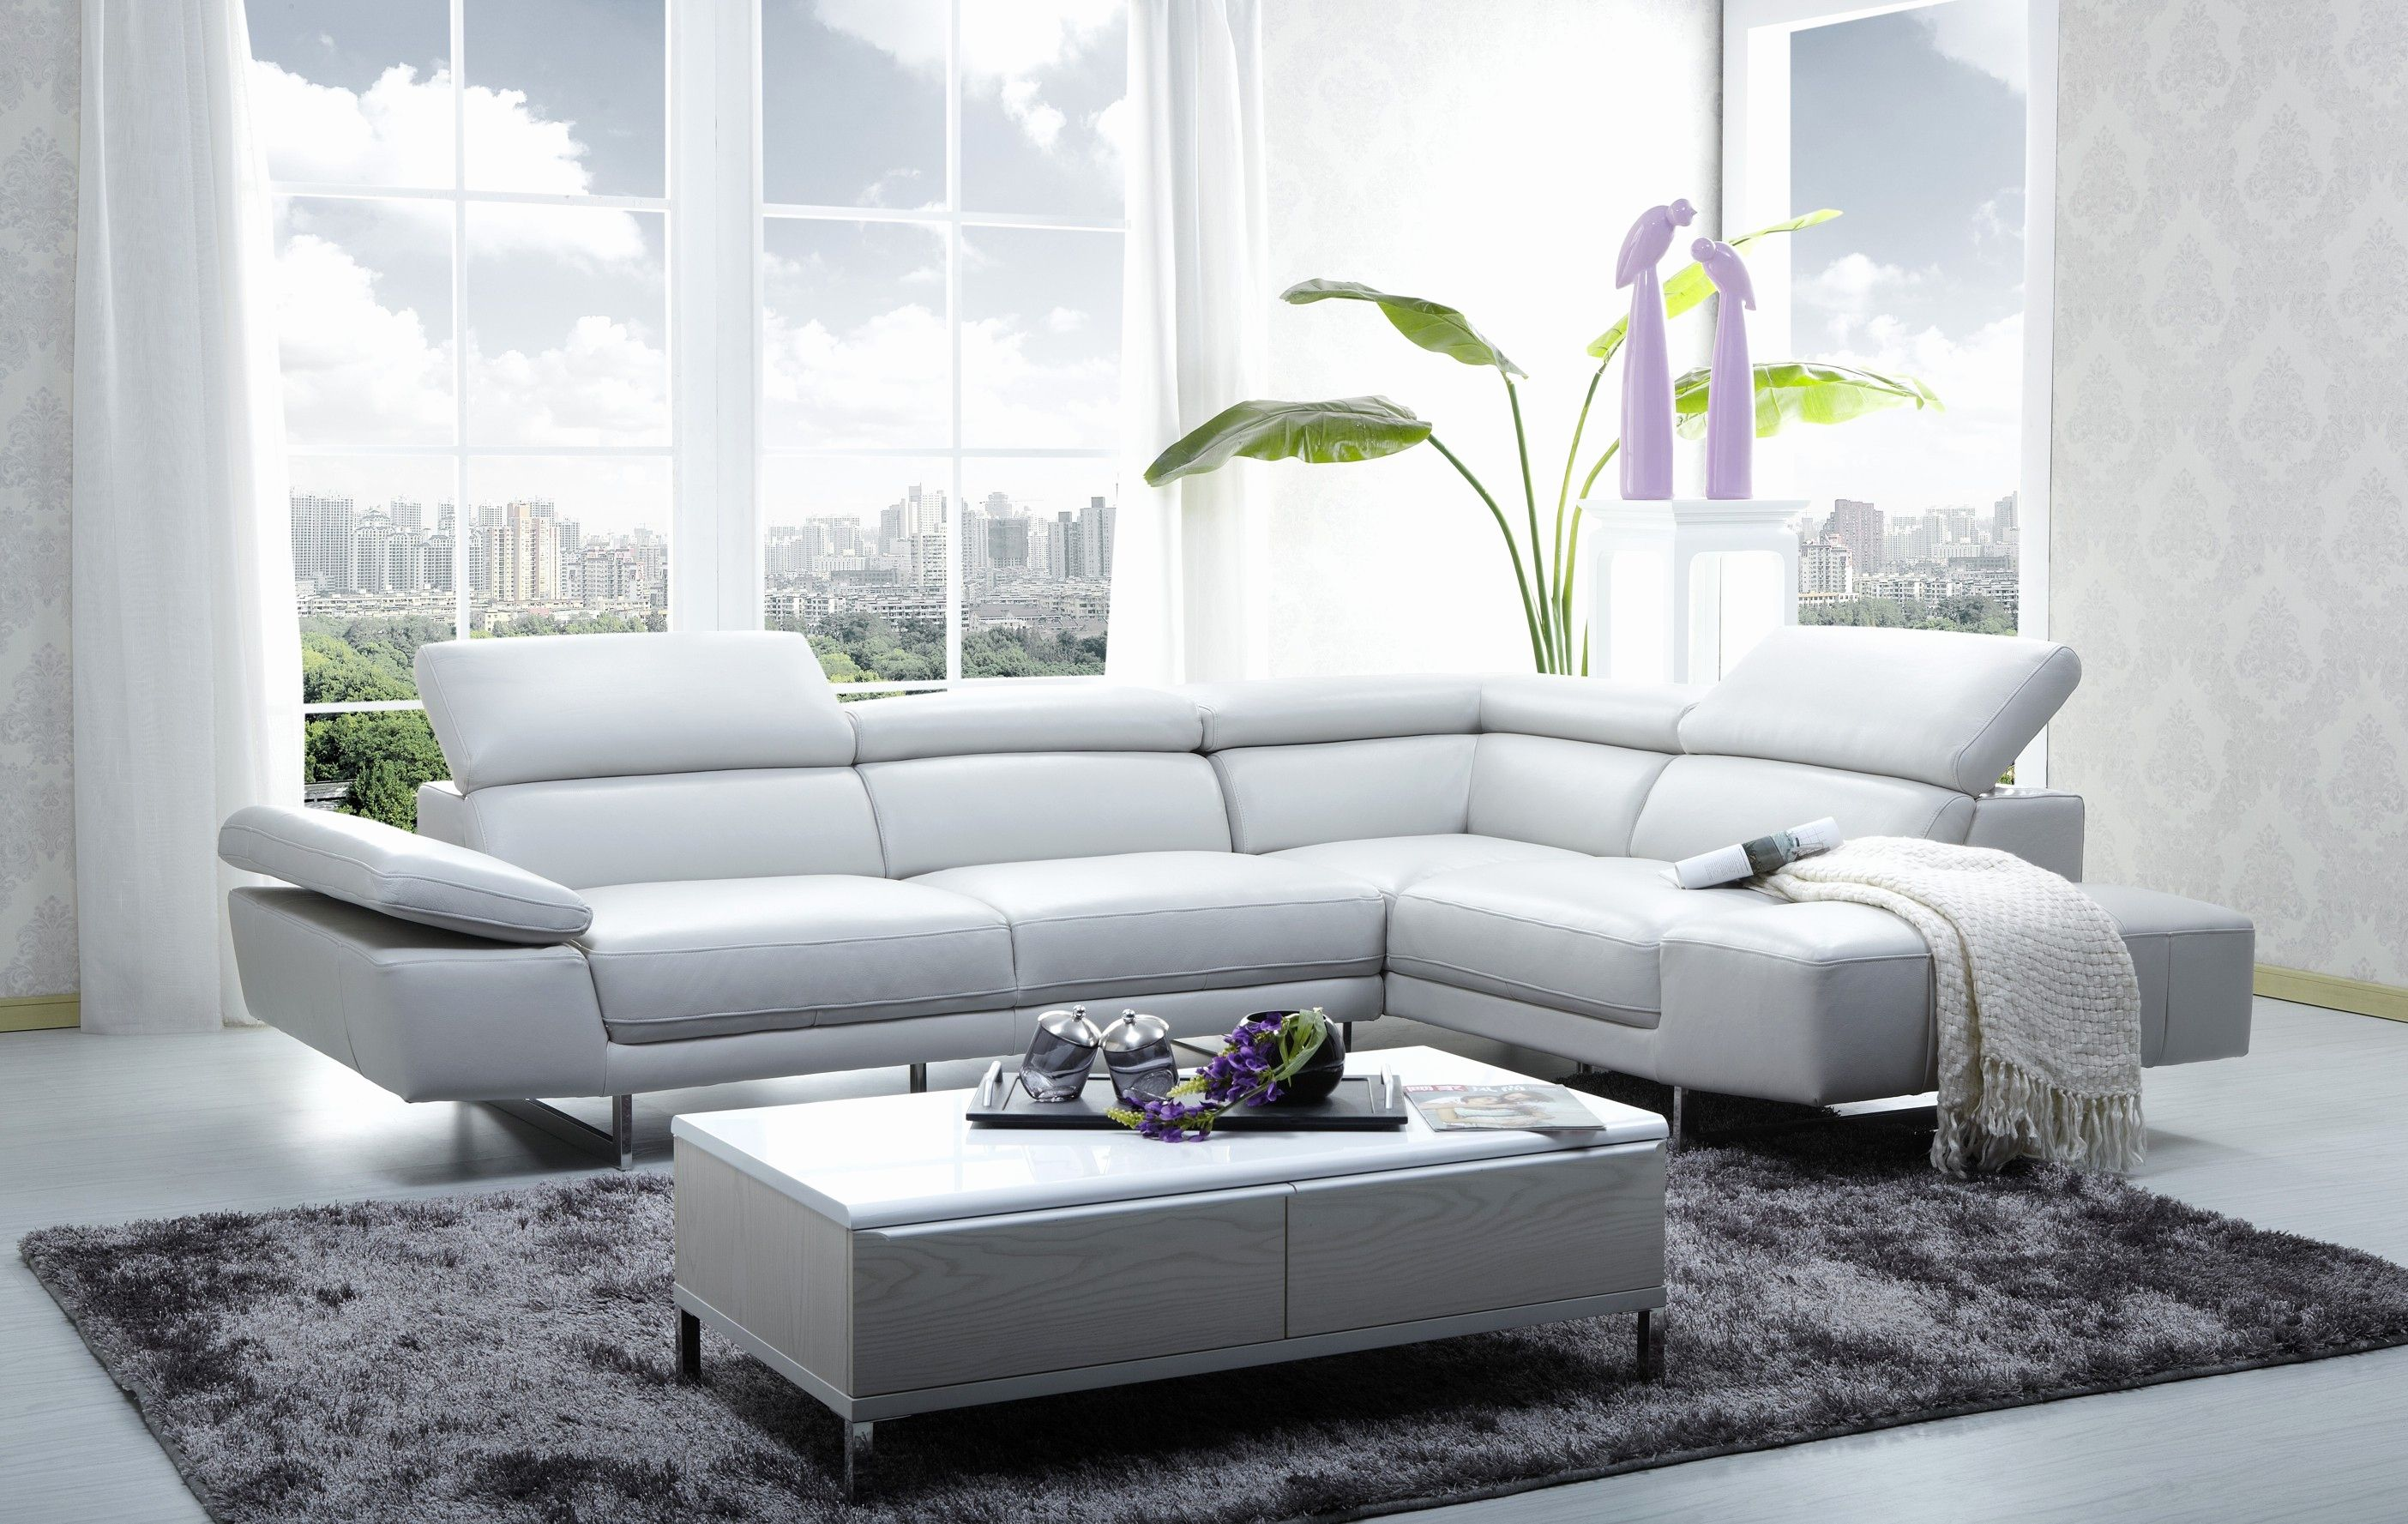 New White Leather Sectional sofas Pics 1717 italian leather modern ...